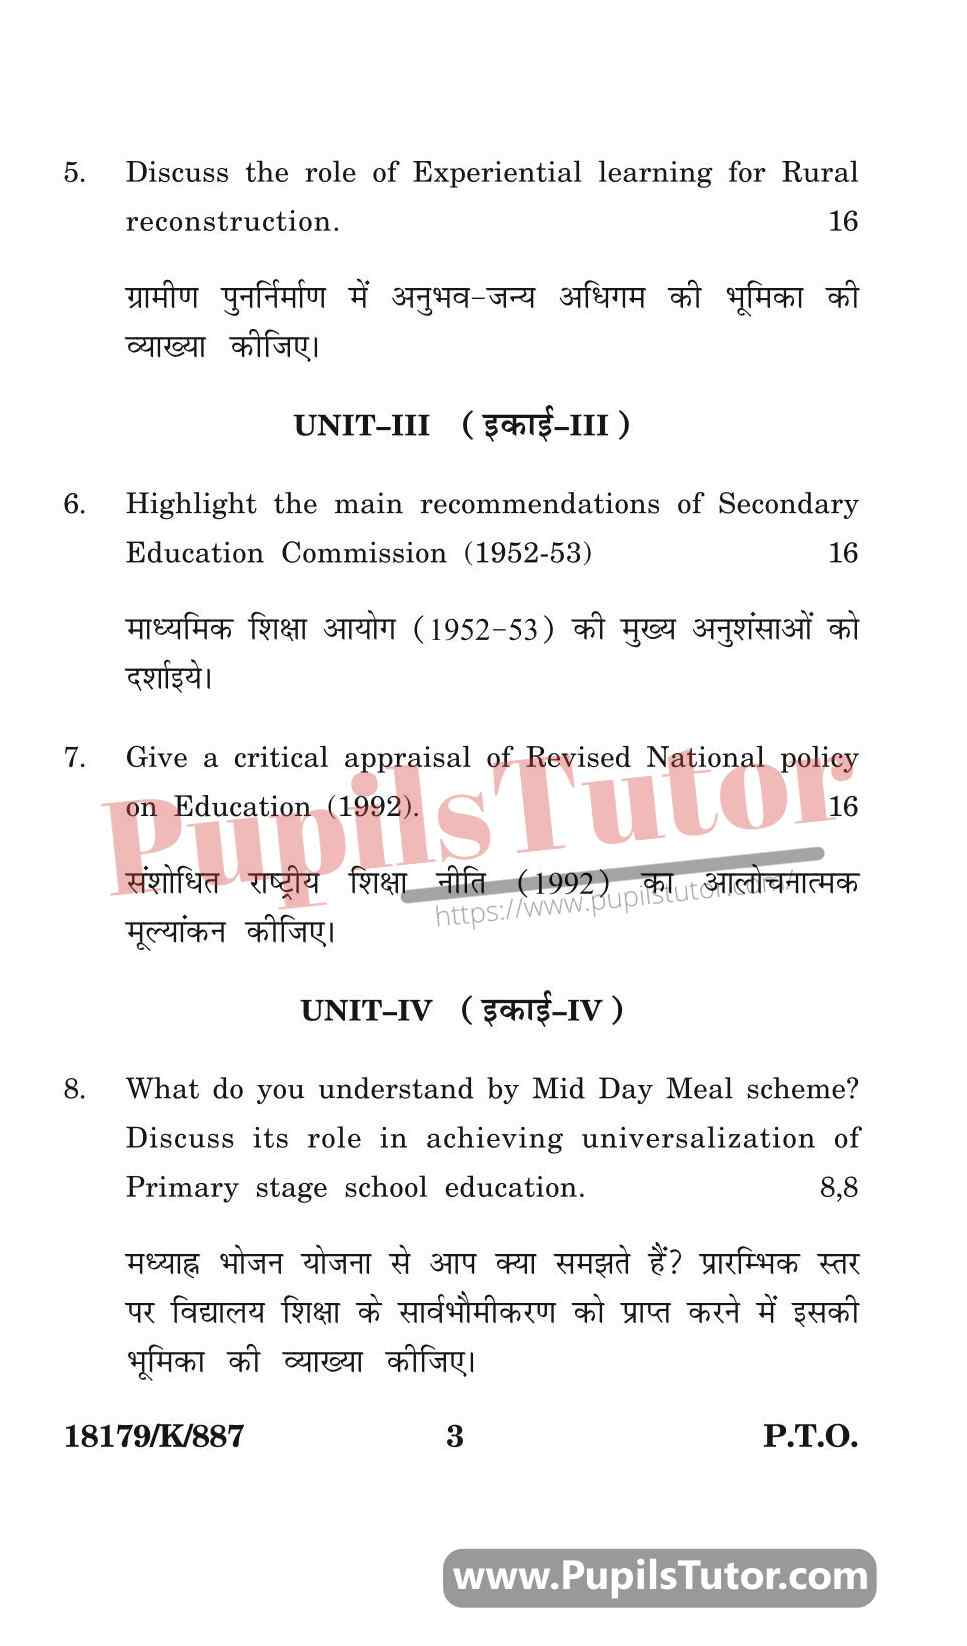 KUK (Kurukshetra University, Haryana) Contemporary India And Education Question Paper 2020 For B.Ed 1st And 2nd Year And All The 4 Semesters In English And Hindi Medium Free Download PDF - Page 3 - pupilstutor